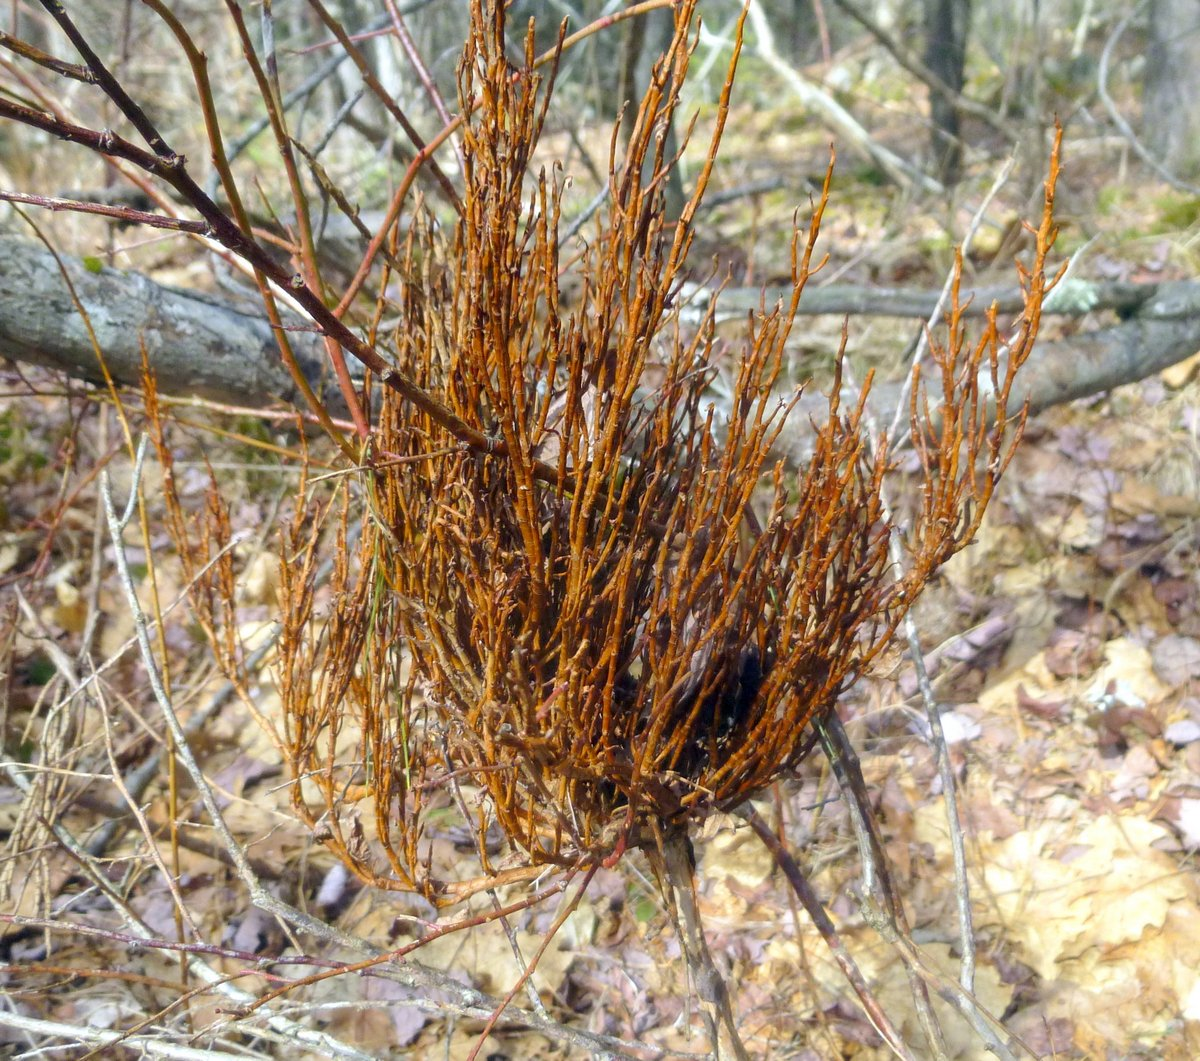 sometimes they can be mistaken for birds' nests